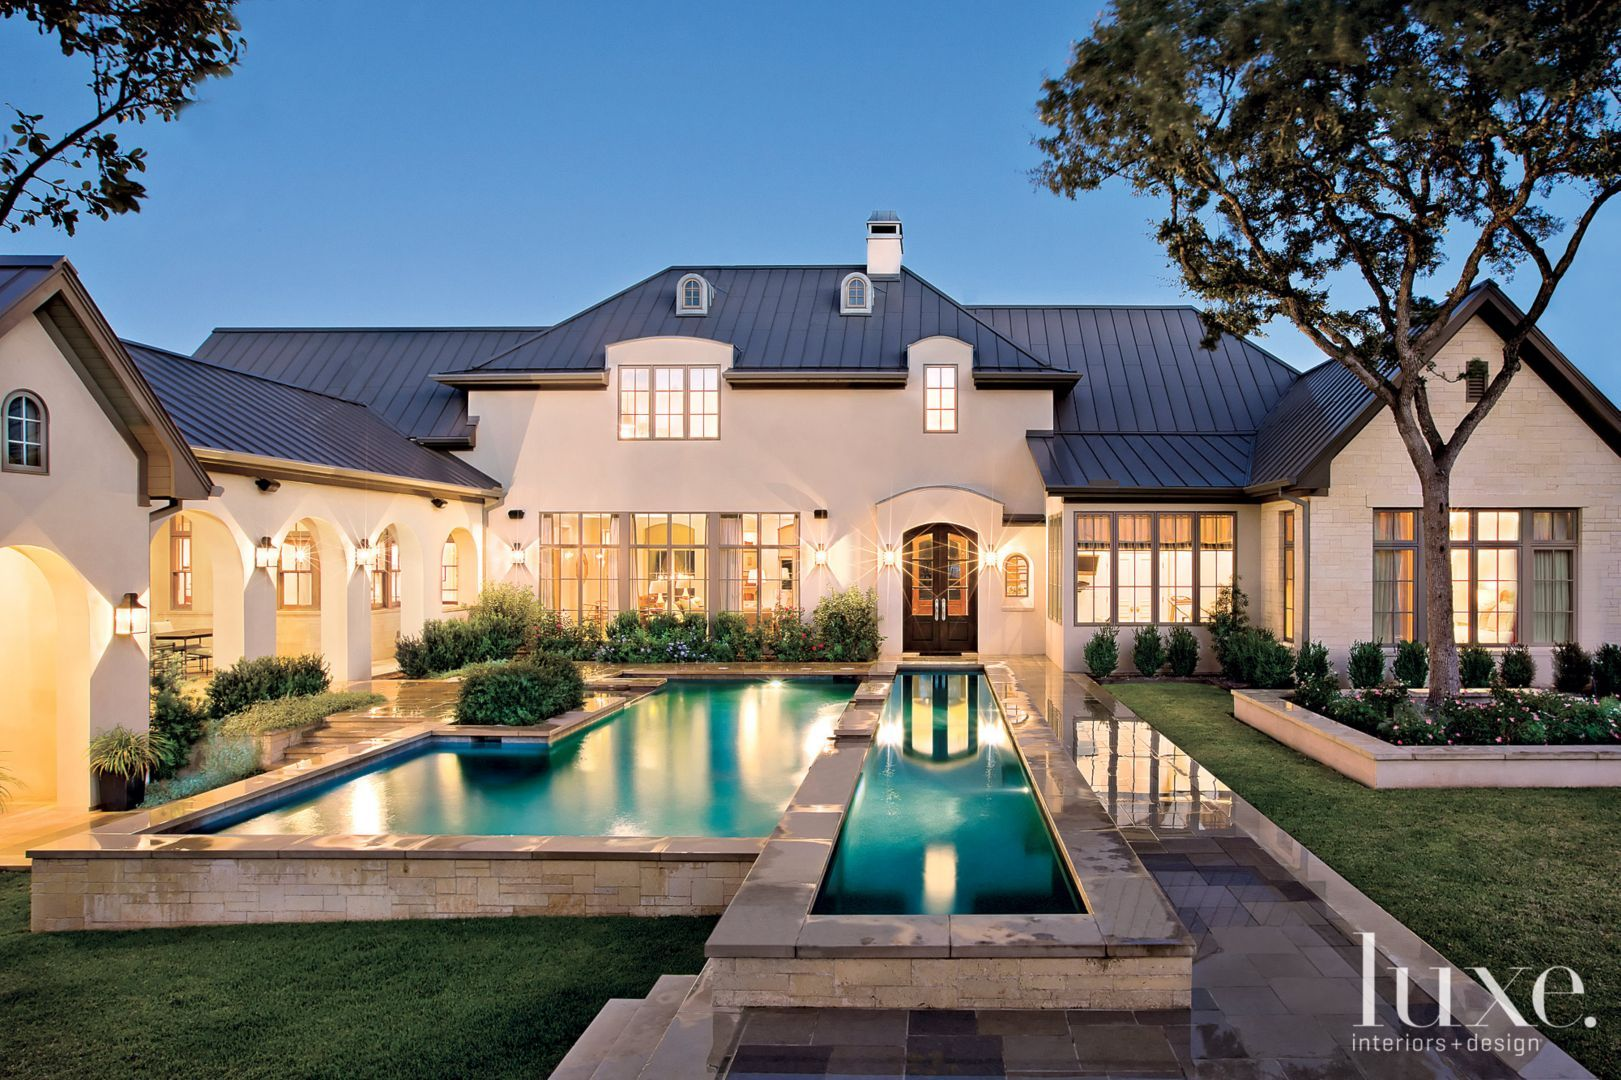 A Transitional Austin Home with a French Country Aesthetic